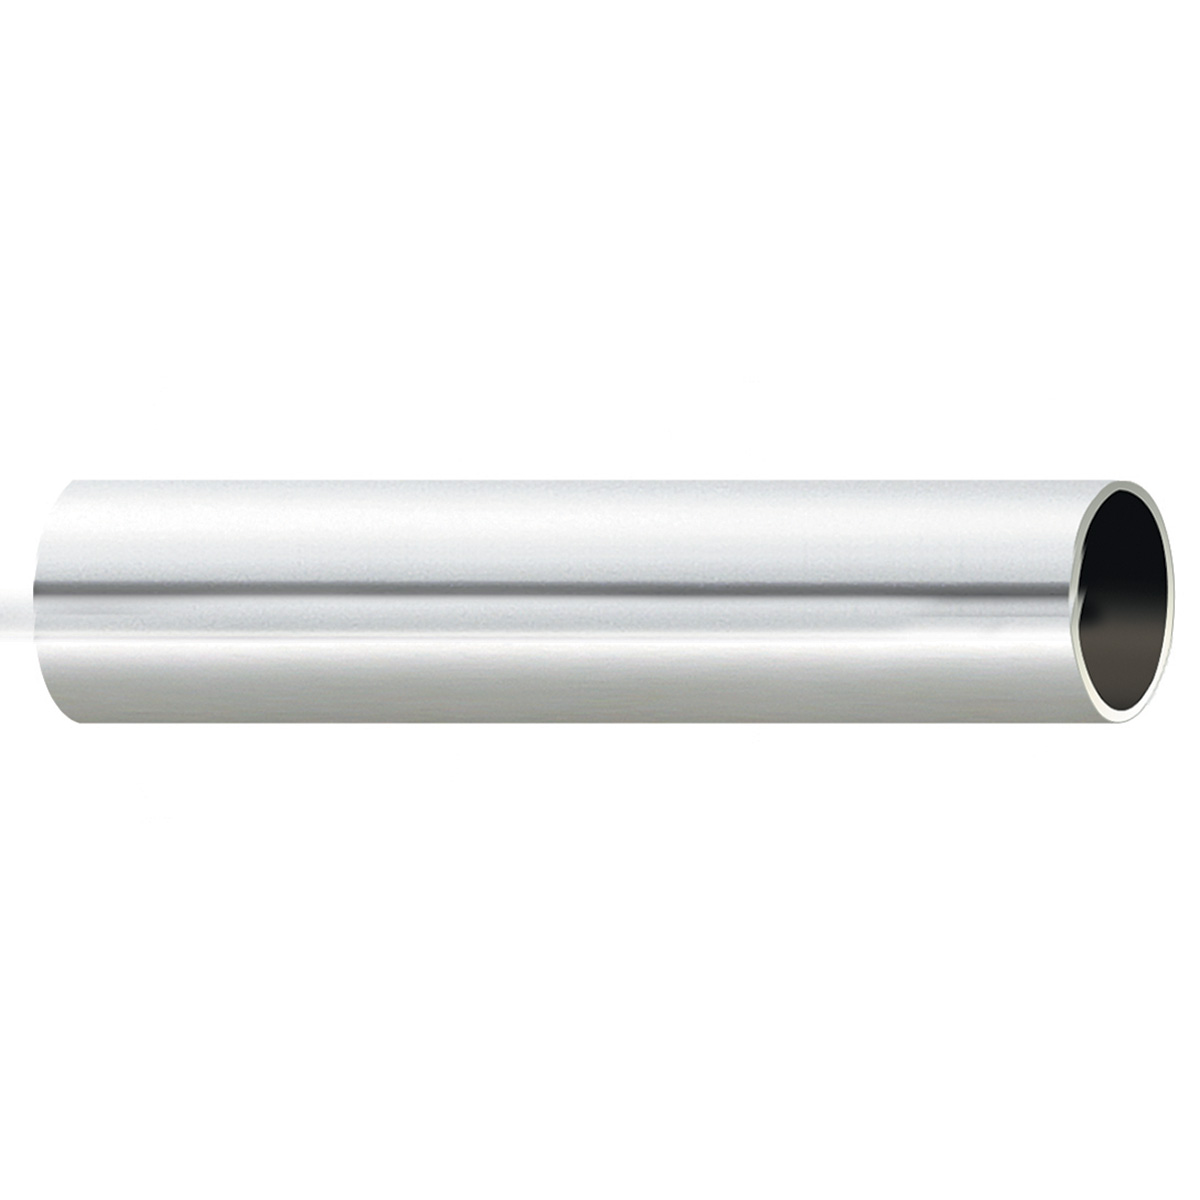 Tube de tringle Ø 20 mm (Chromé)